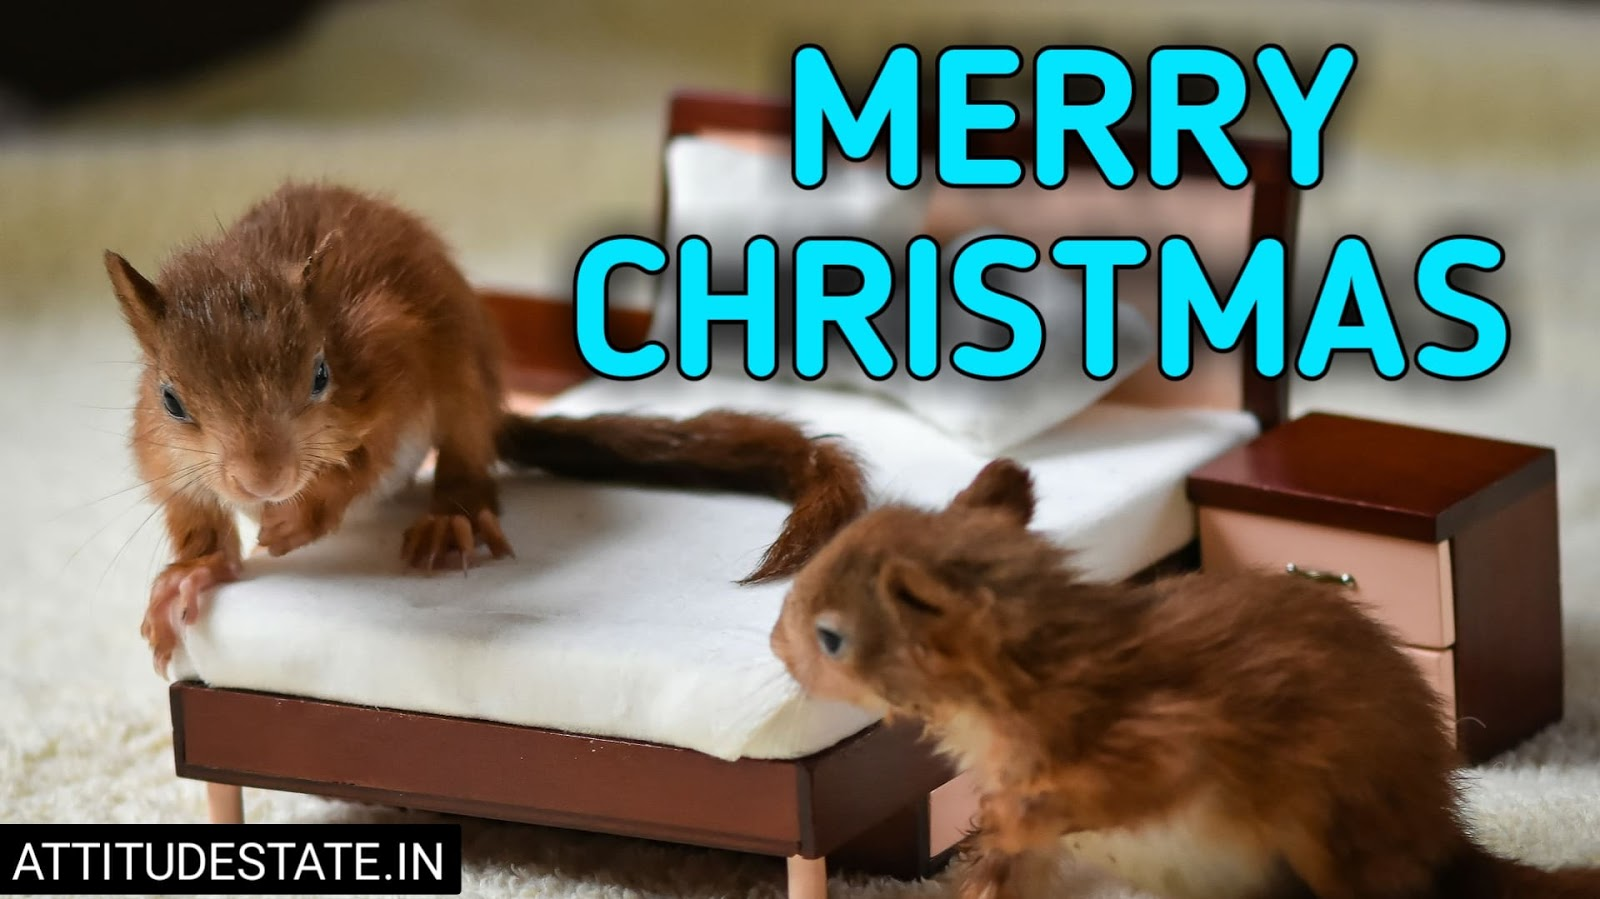 funny merry christmas wishes